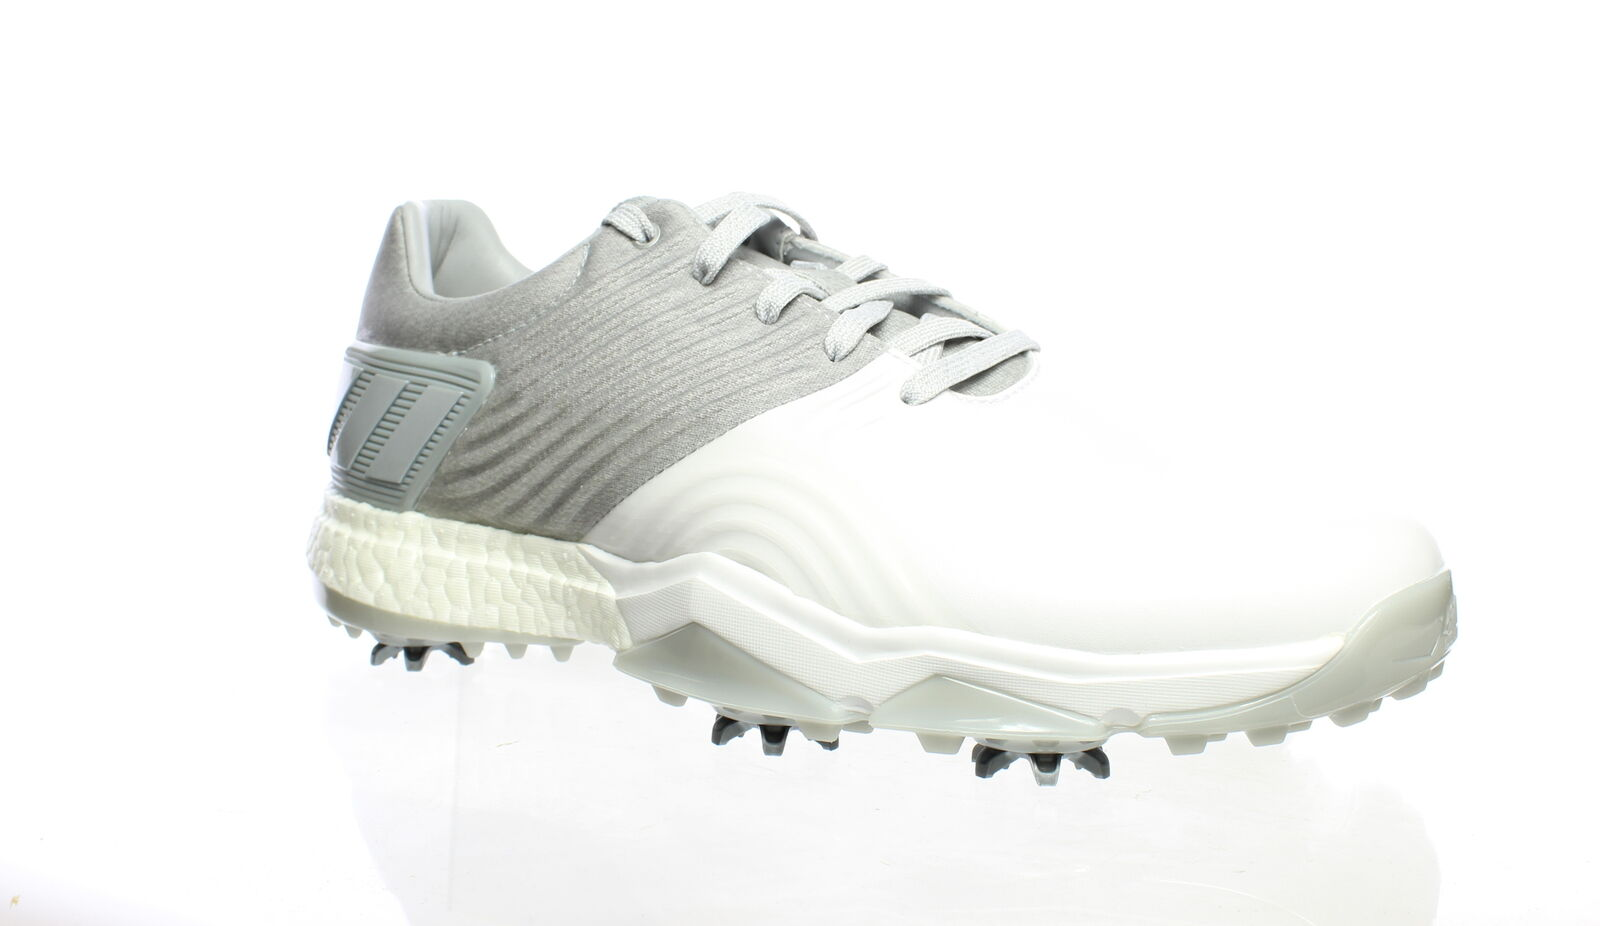 Adidas Mens Adipower 4Orged White Golf Shoes Size 7.5 (Wide) (1516440)